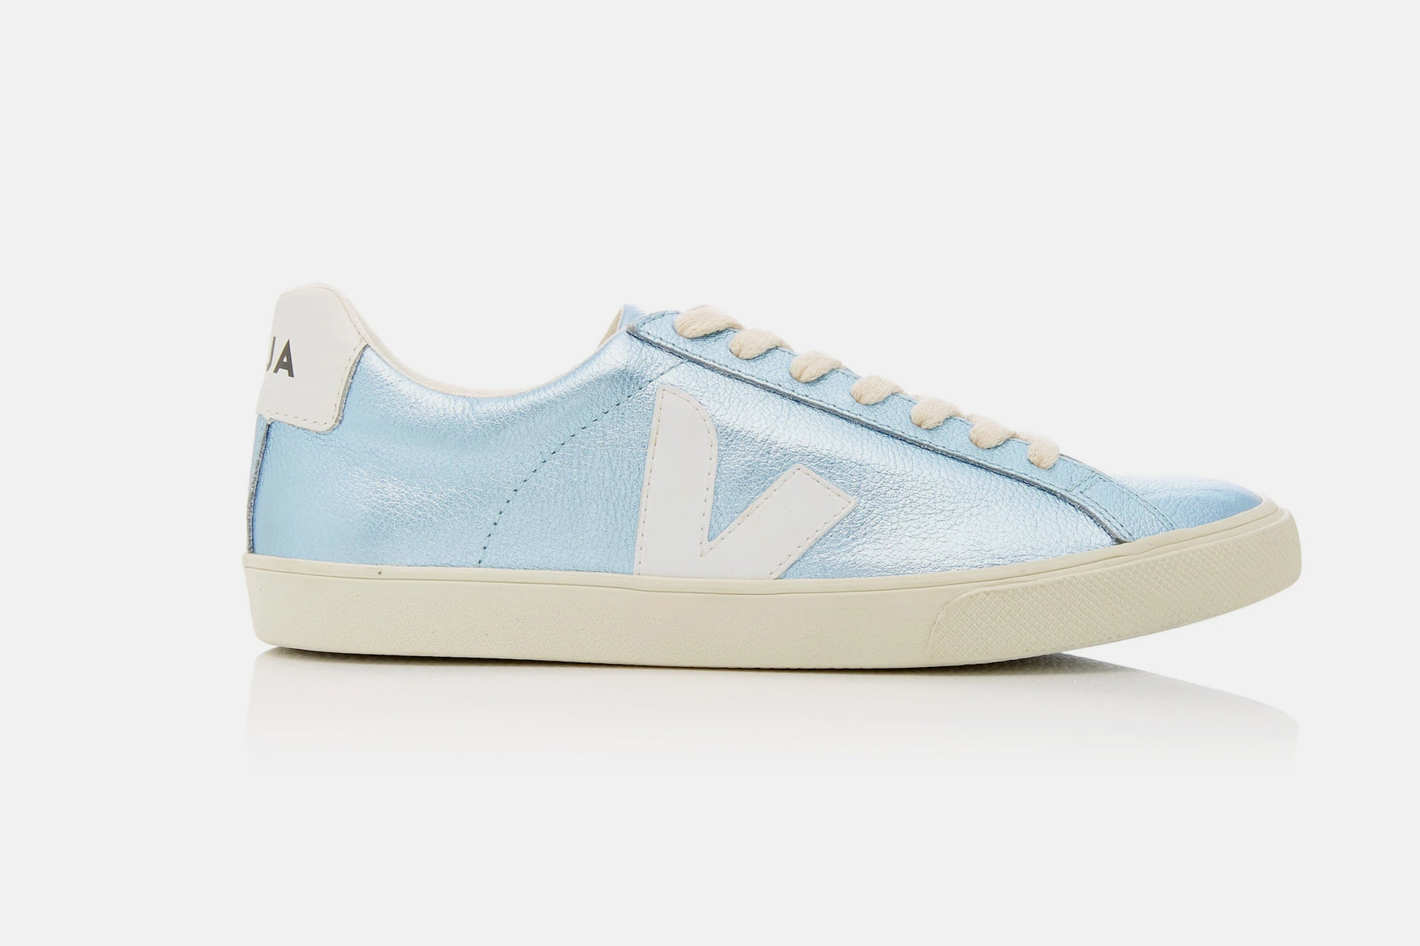 Veja Esplar Metallic Leather Sneakers at Moda Operandi 58dbd66ec